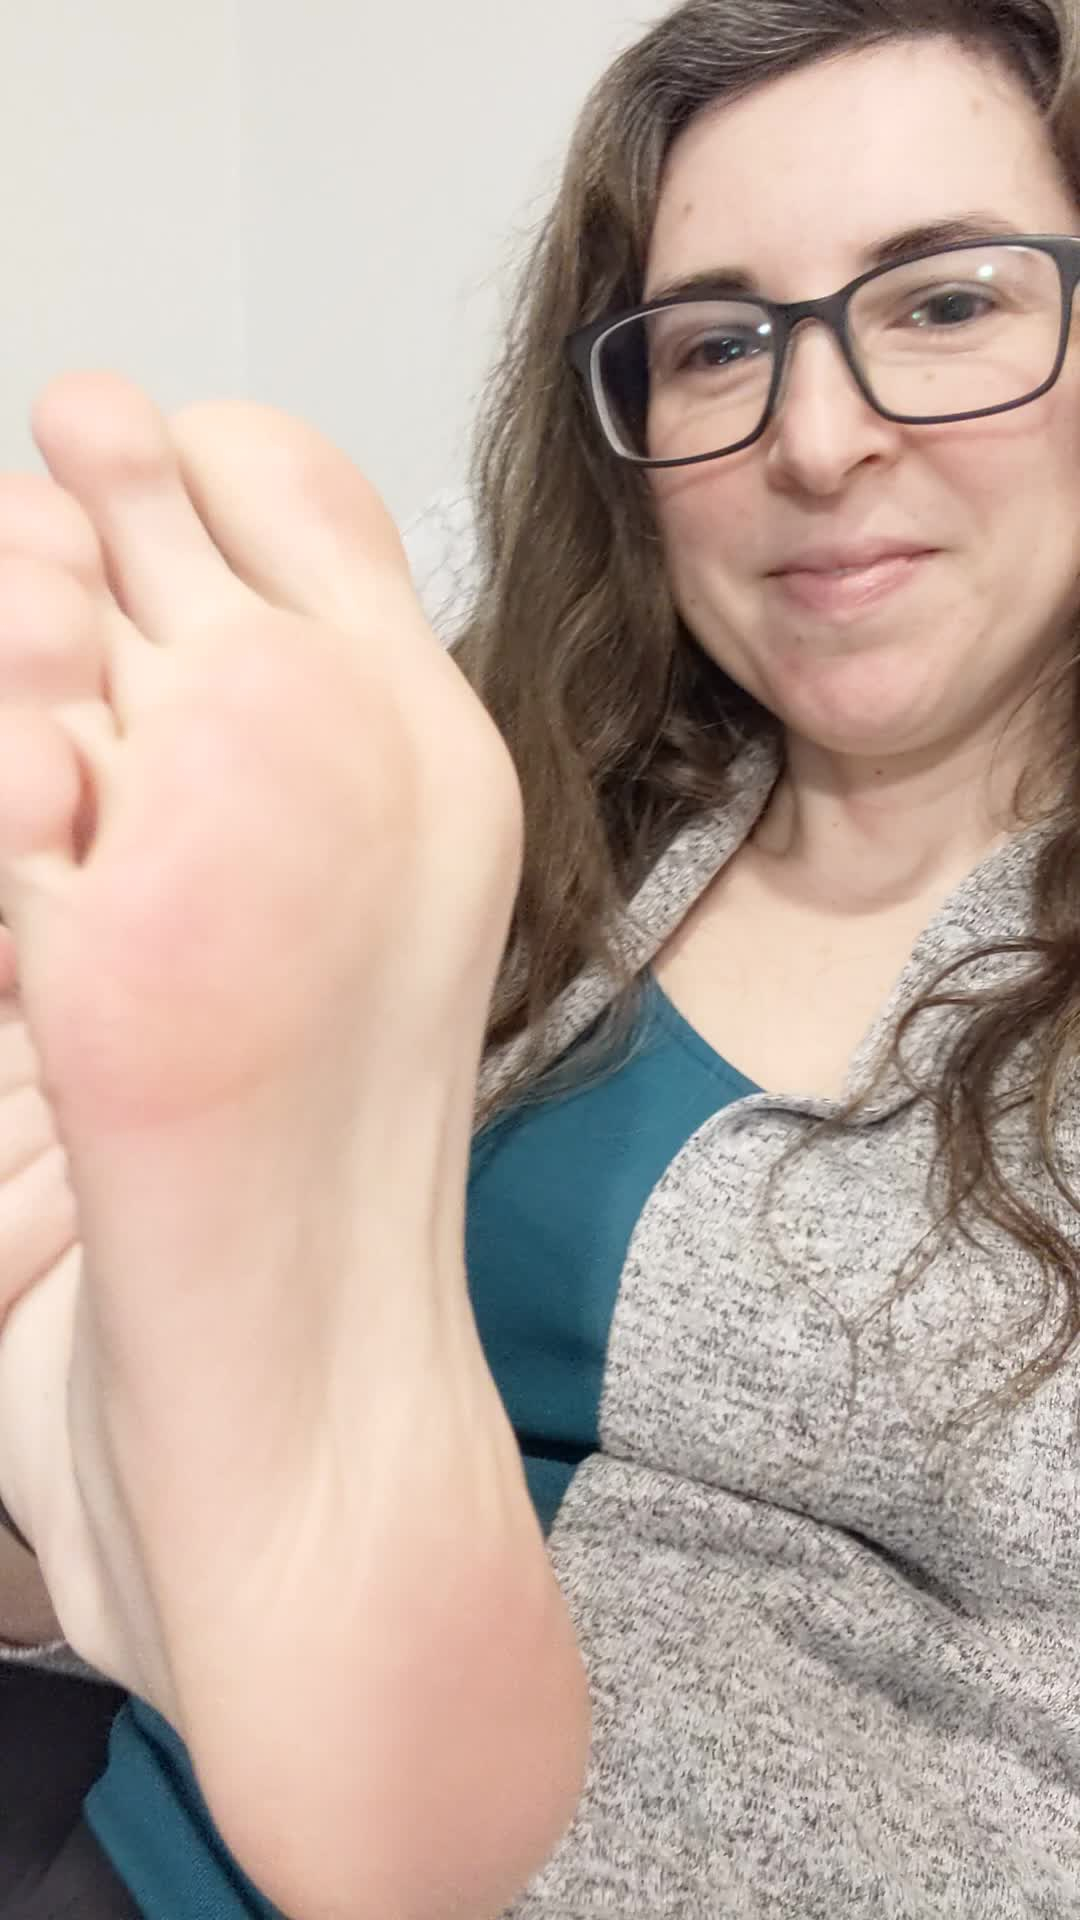 Giving you a peek of my soles and toes